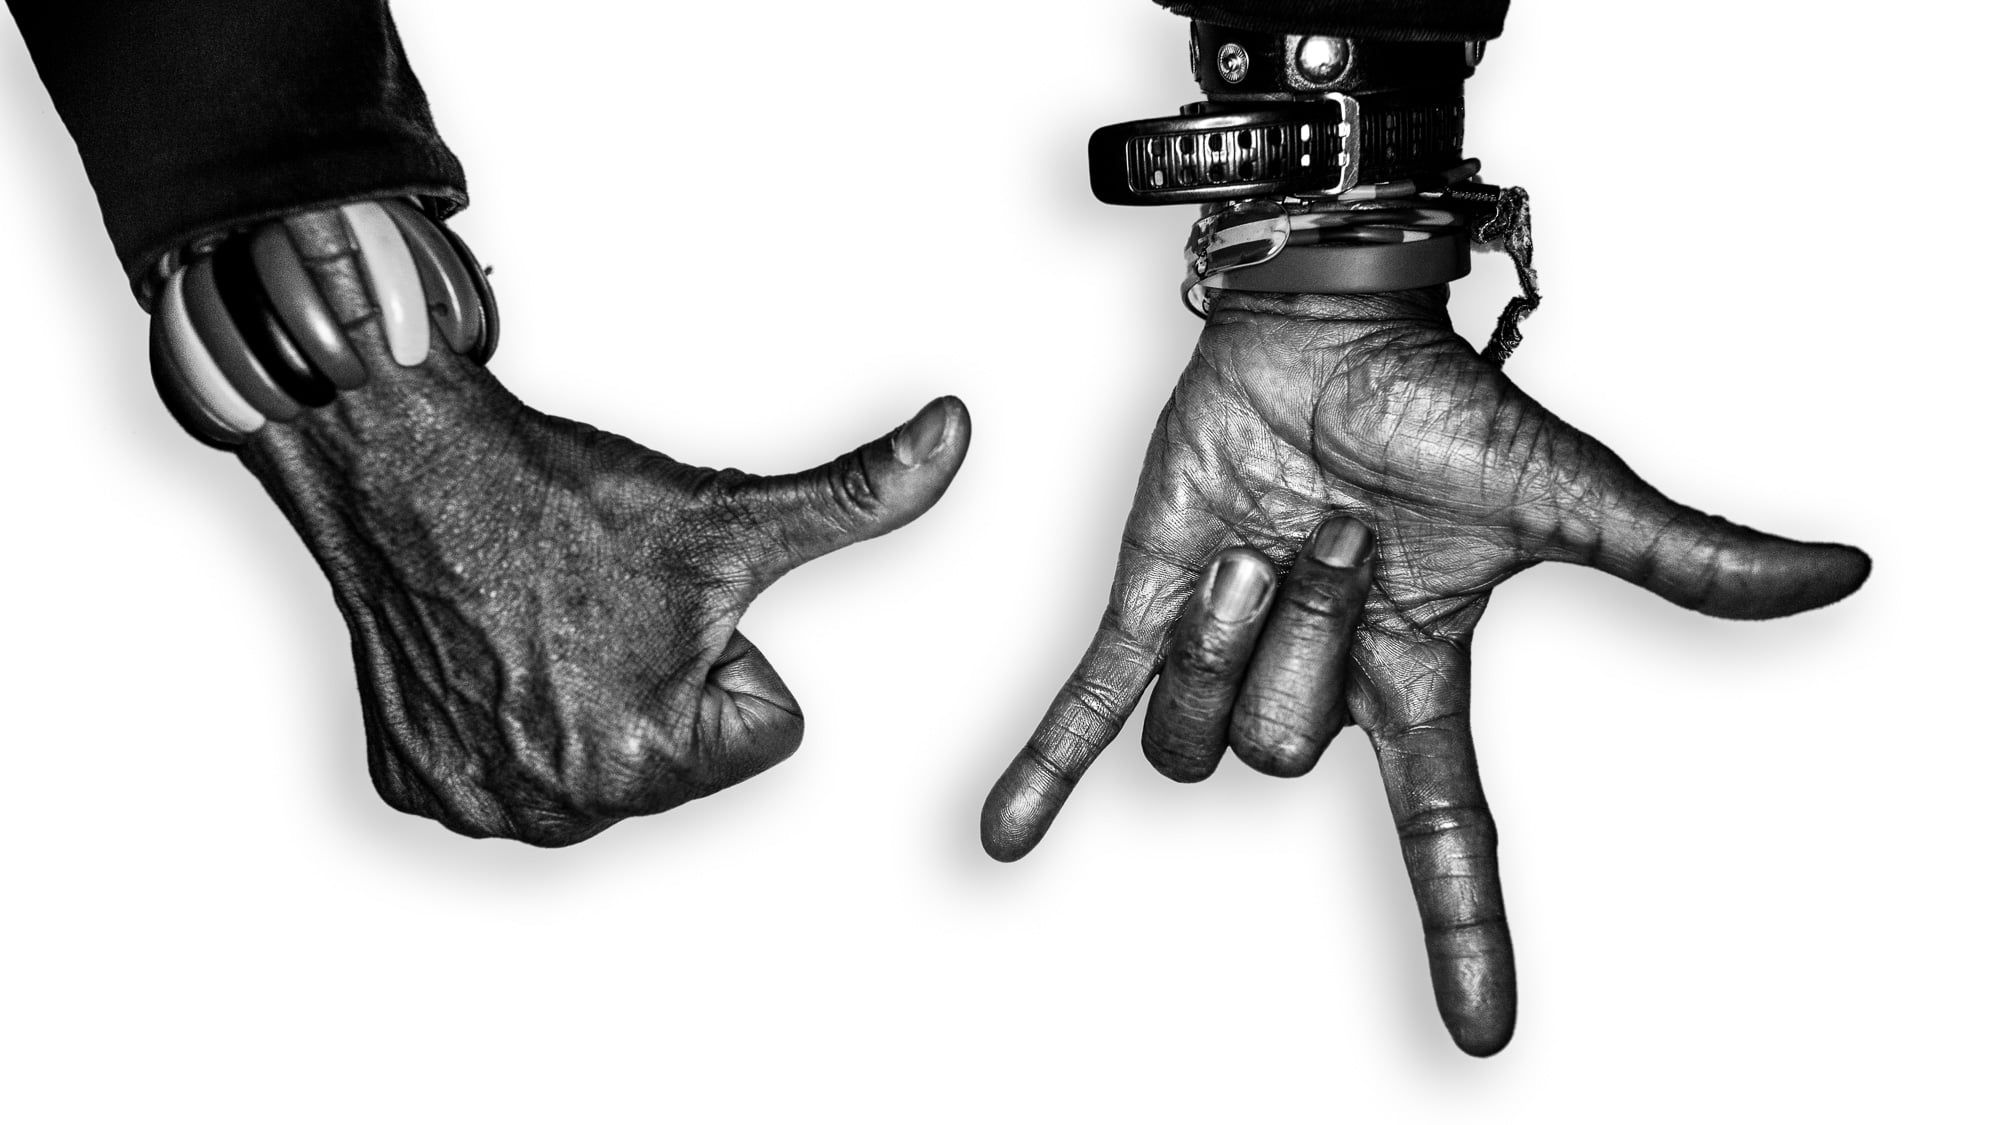 The HANDS Project